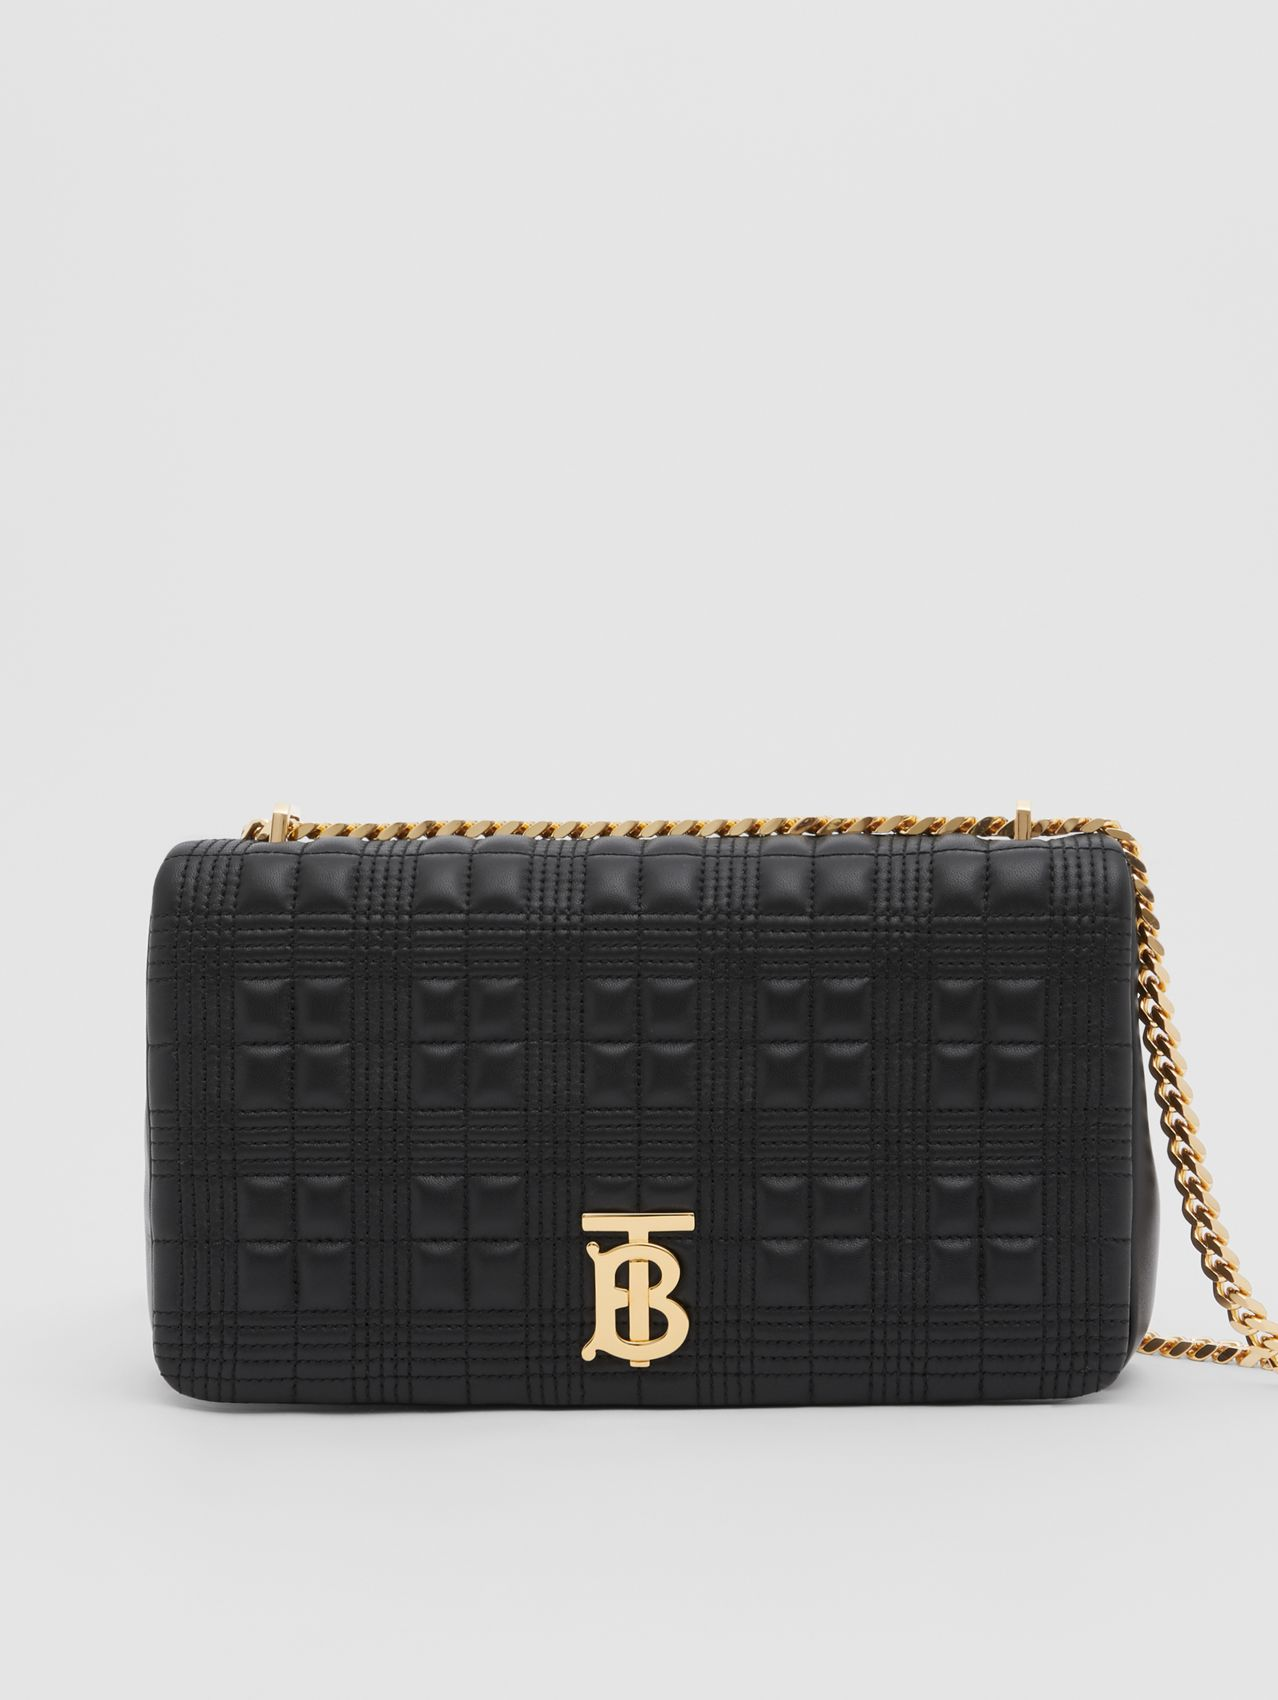 Medium Quilted Lambskin Lola Bag in Black/light Gold